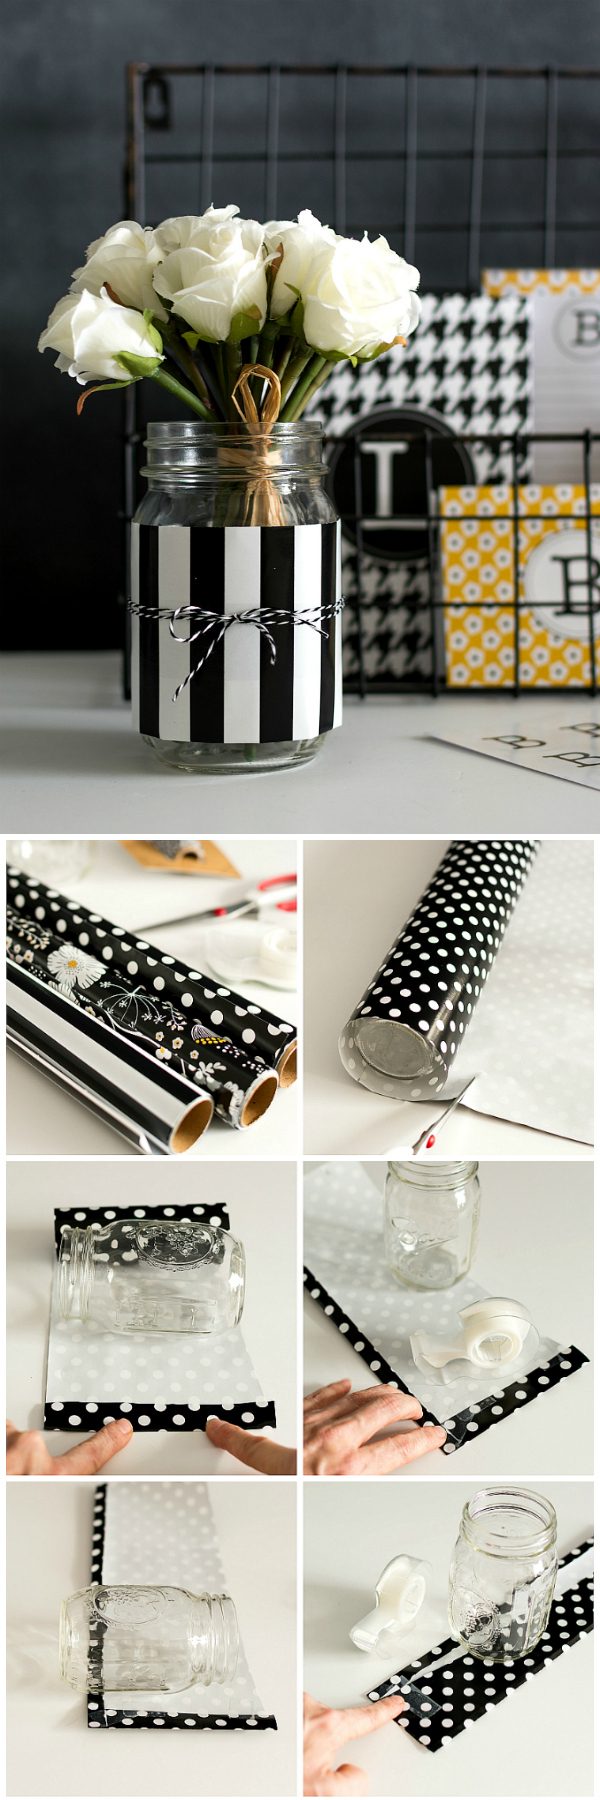 Mason Jar Desk Organizers - Get Organized with Pretty Mason Jars - Easy Mason Jar Craft Idea